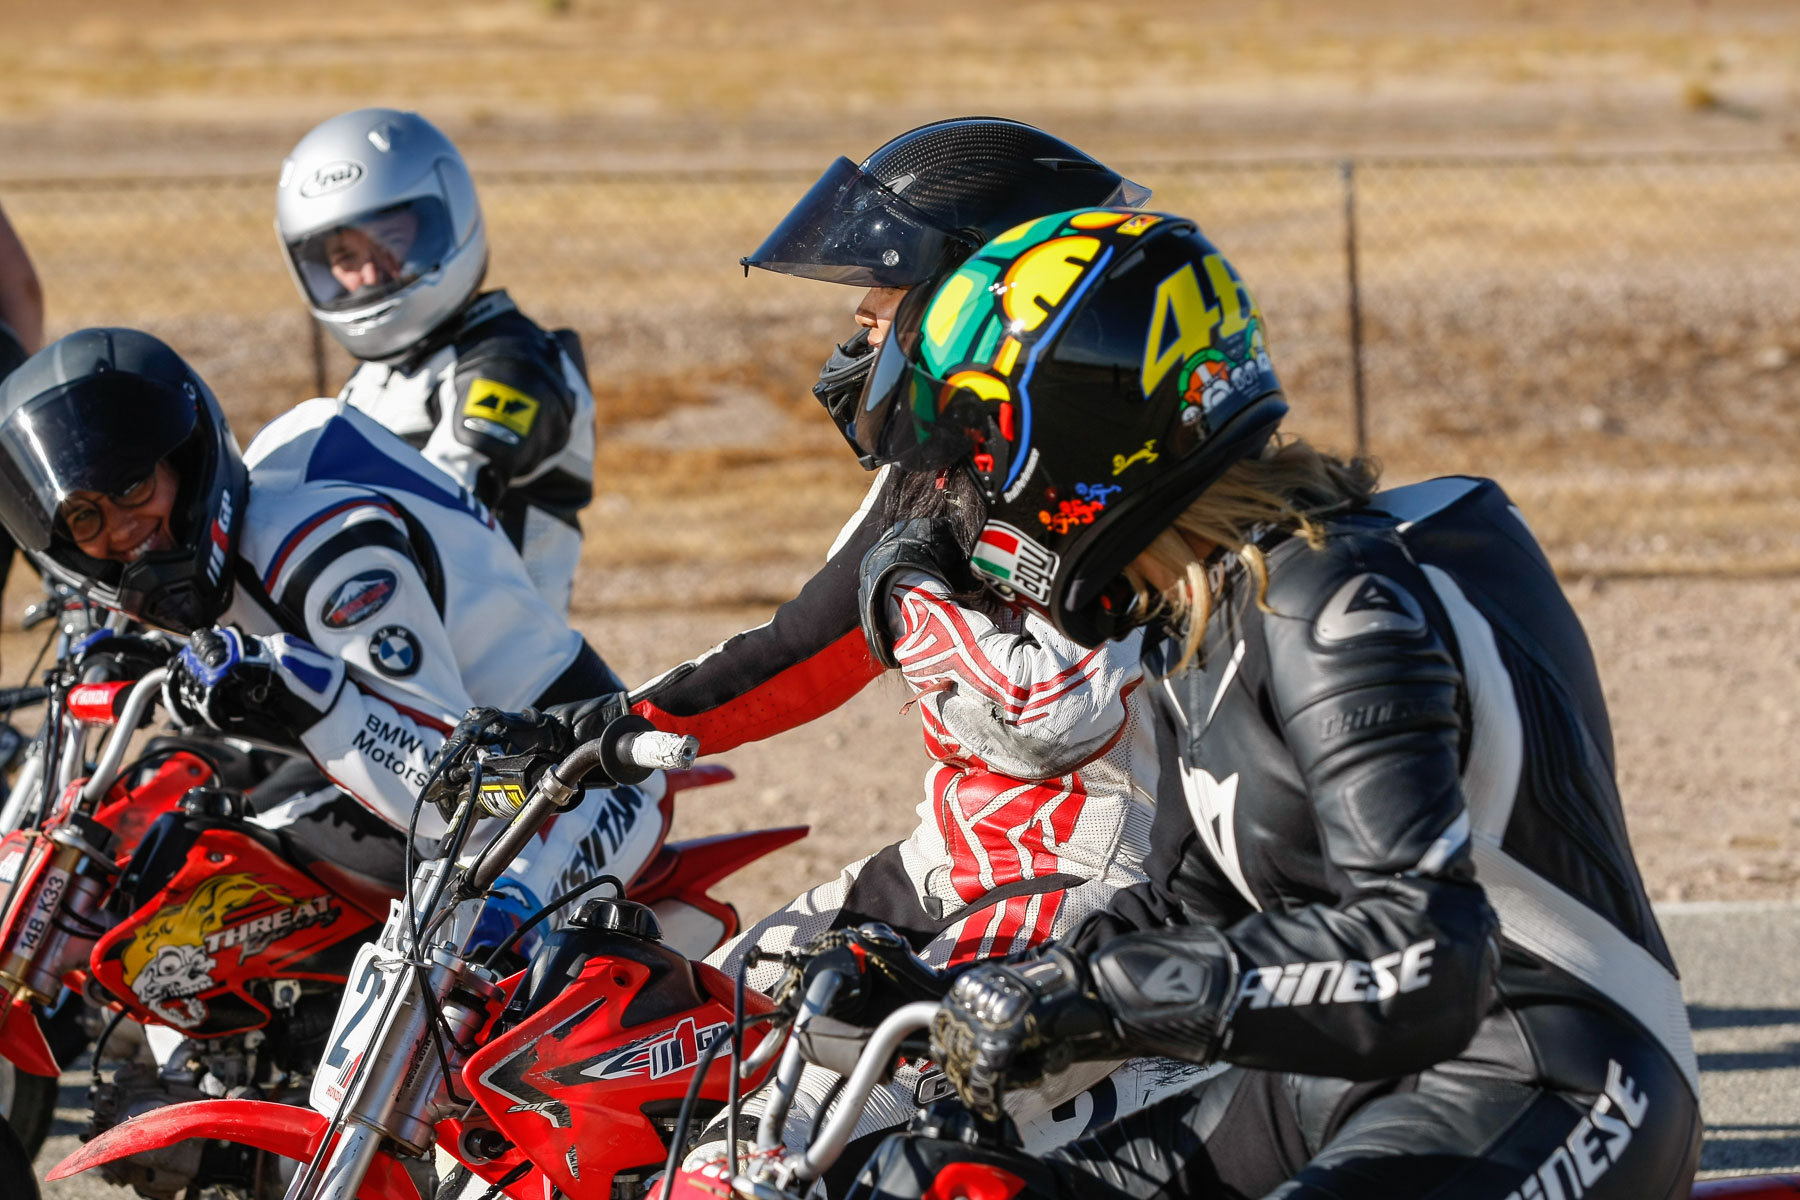 M1GP_RC_Ladies_Nov17_0122.jpg